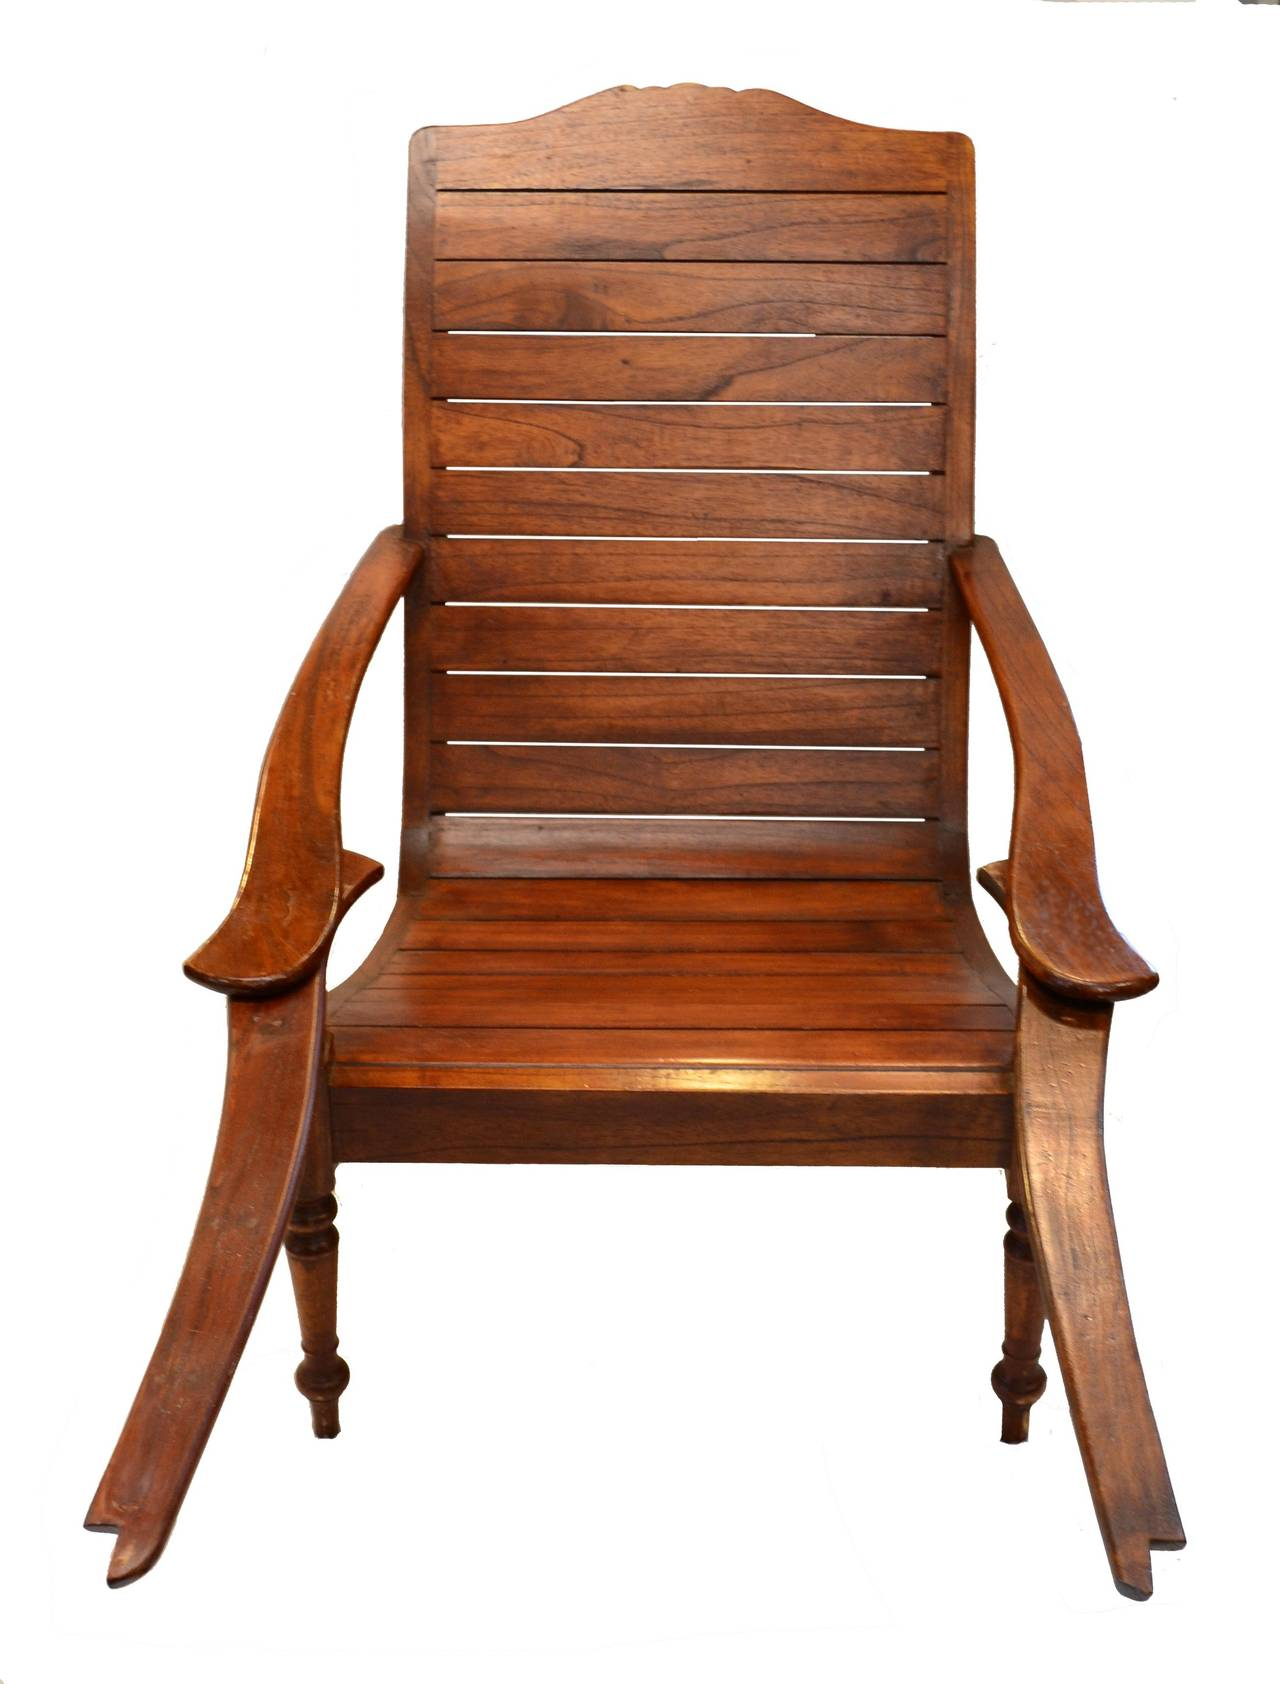 plantation style chairs craftsman folding lawn chair with swivel out footrests for sale at 1stdibs